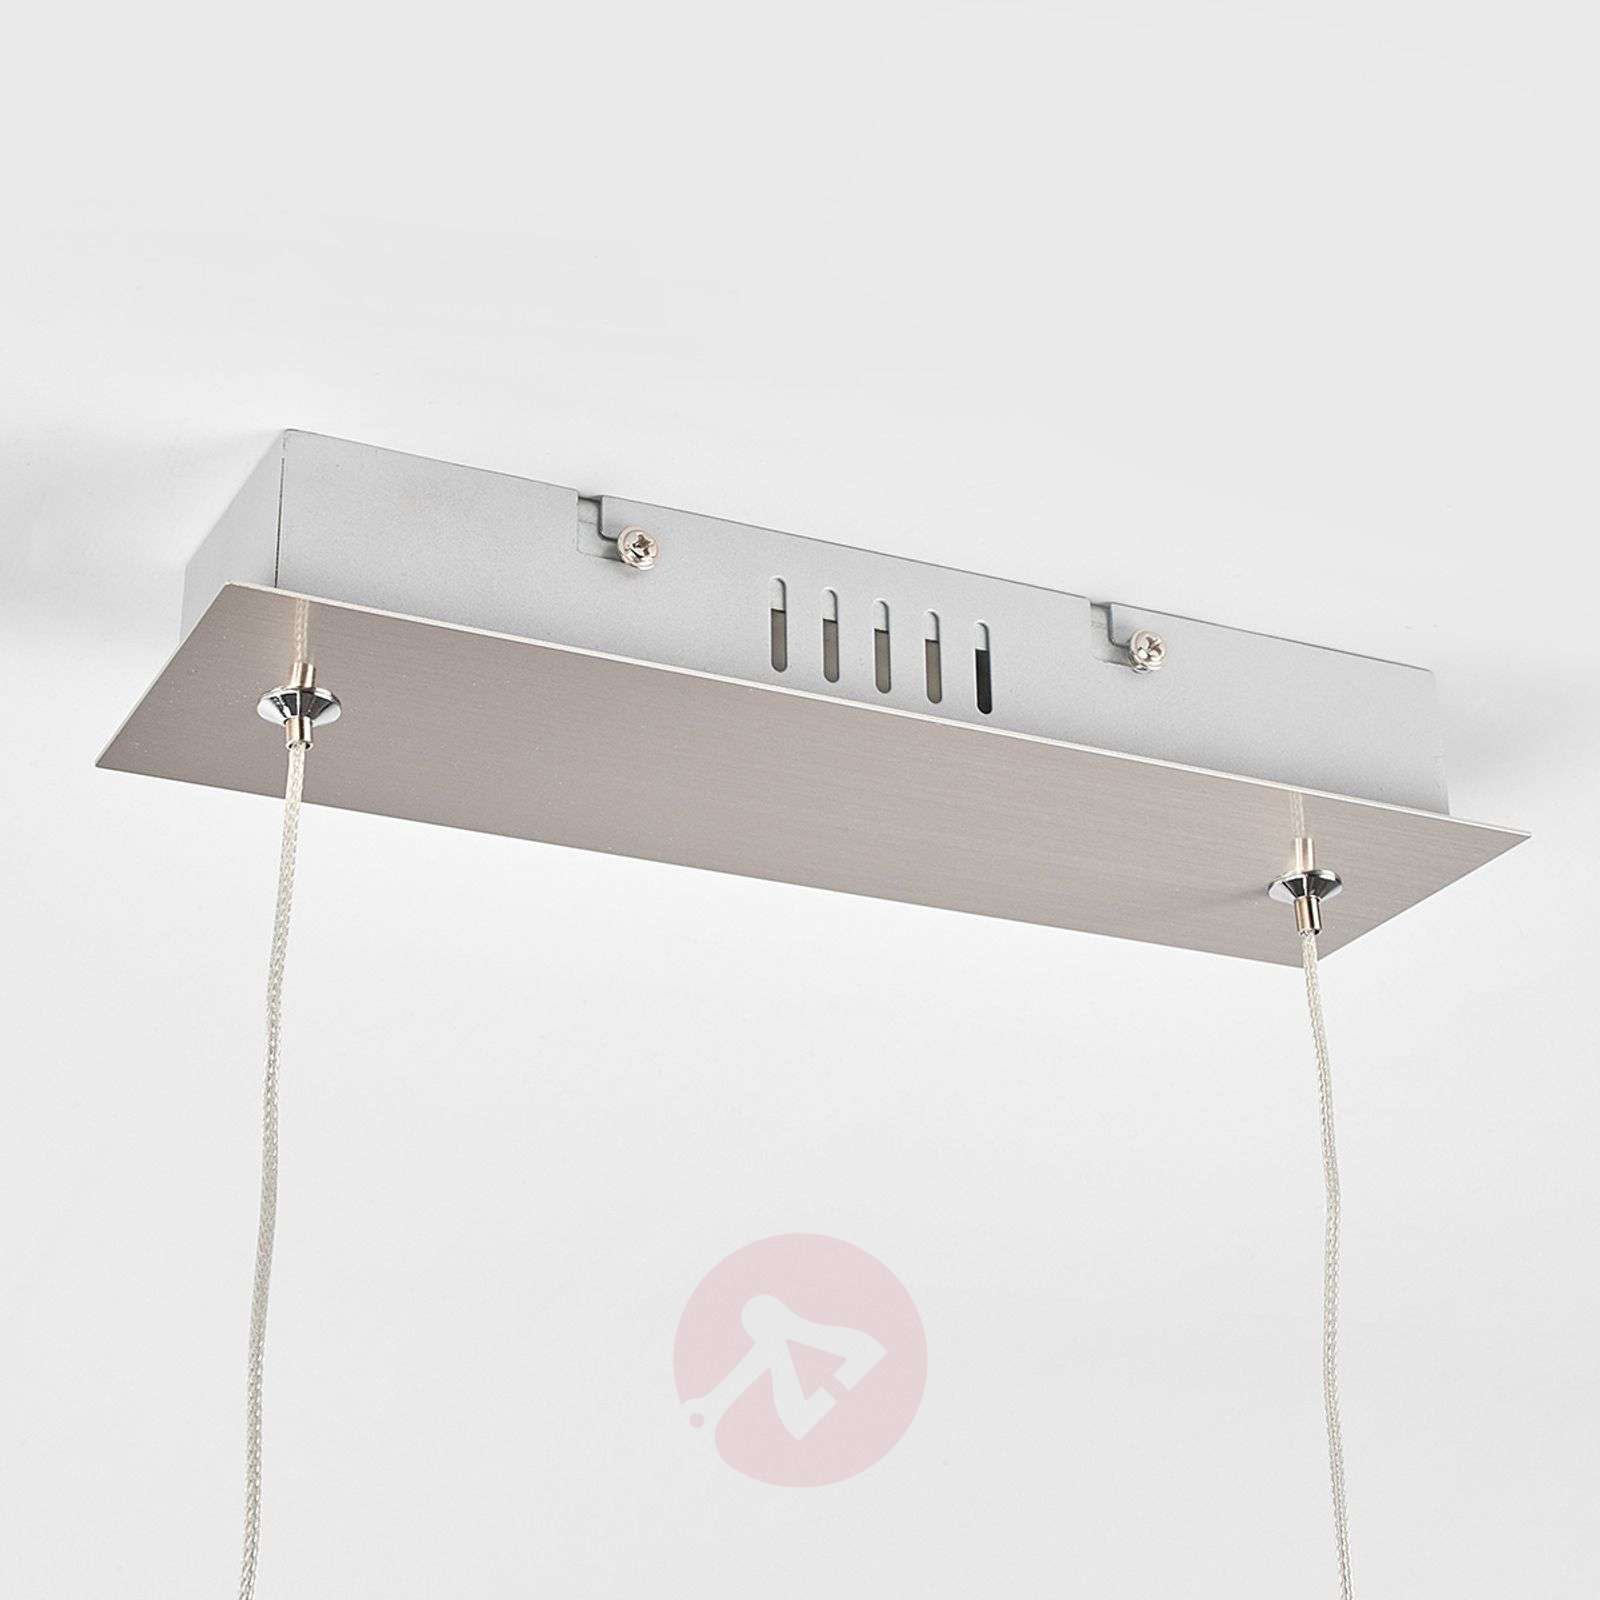 Lámpara pendular LED purista Iven-9985049-01